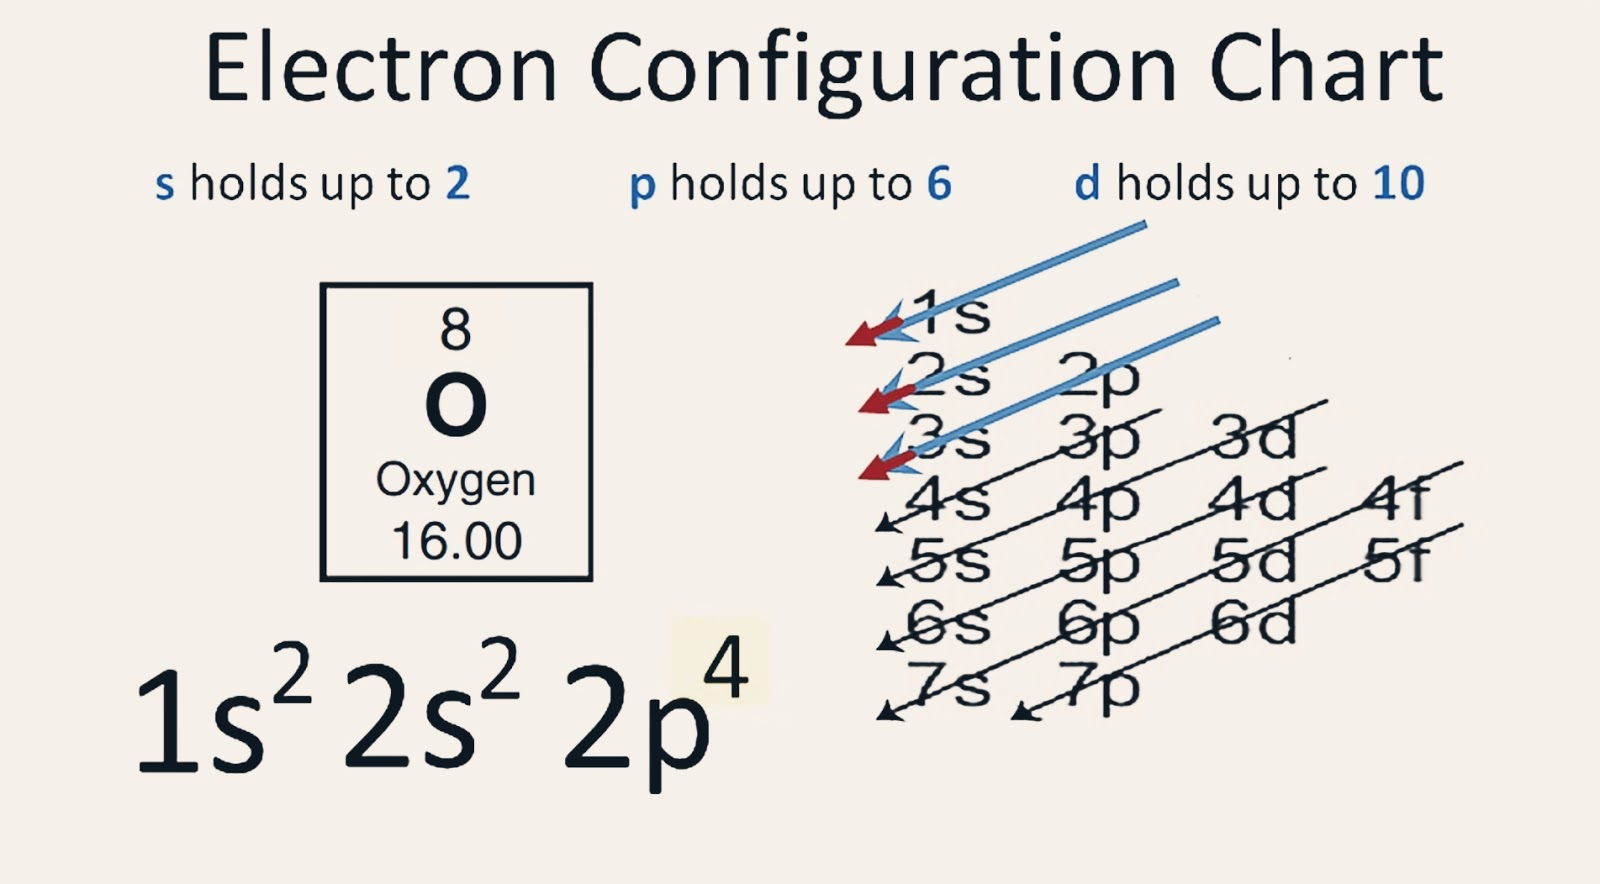 【5 Steps】Oxygen Electron Configuration in Just 5 Steps|| Electron Configuration of Oxygen(O)